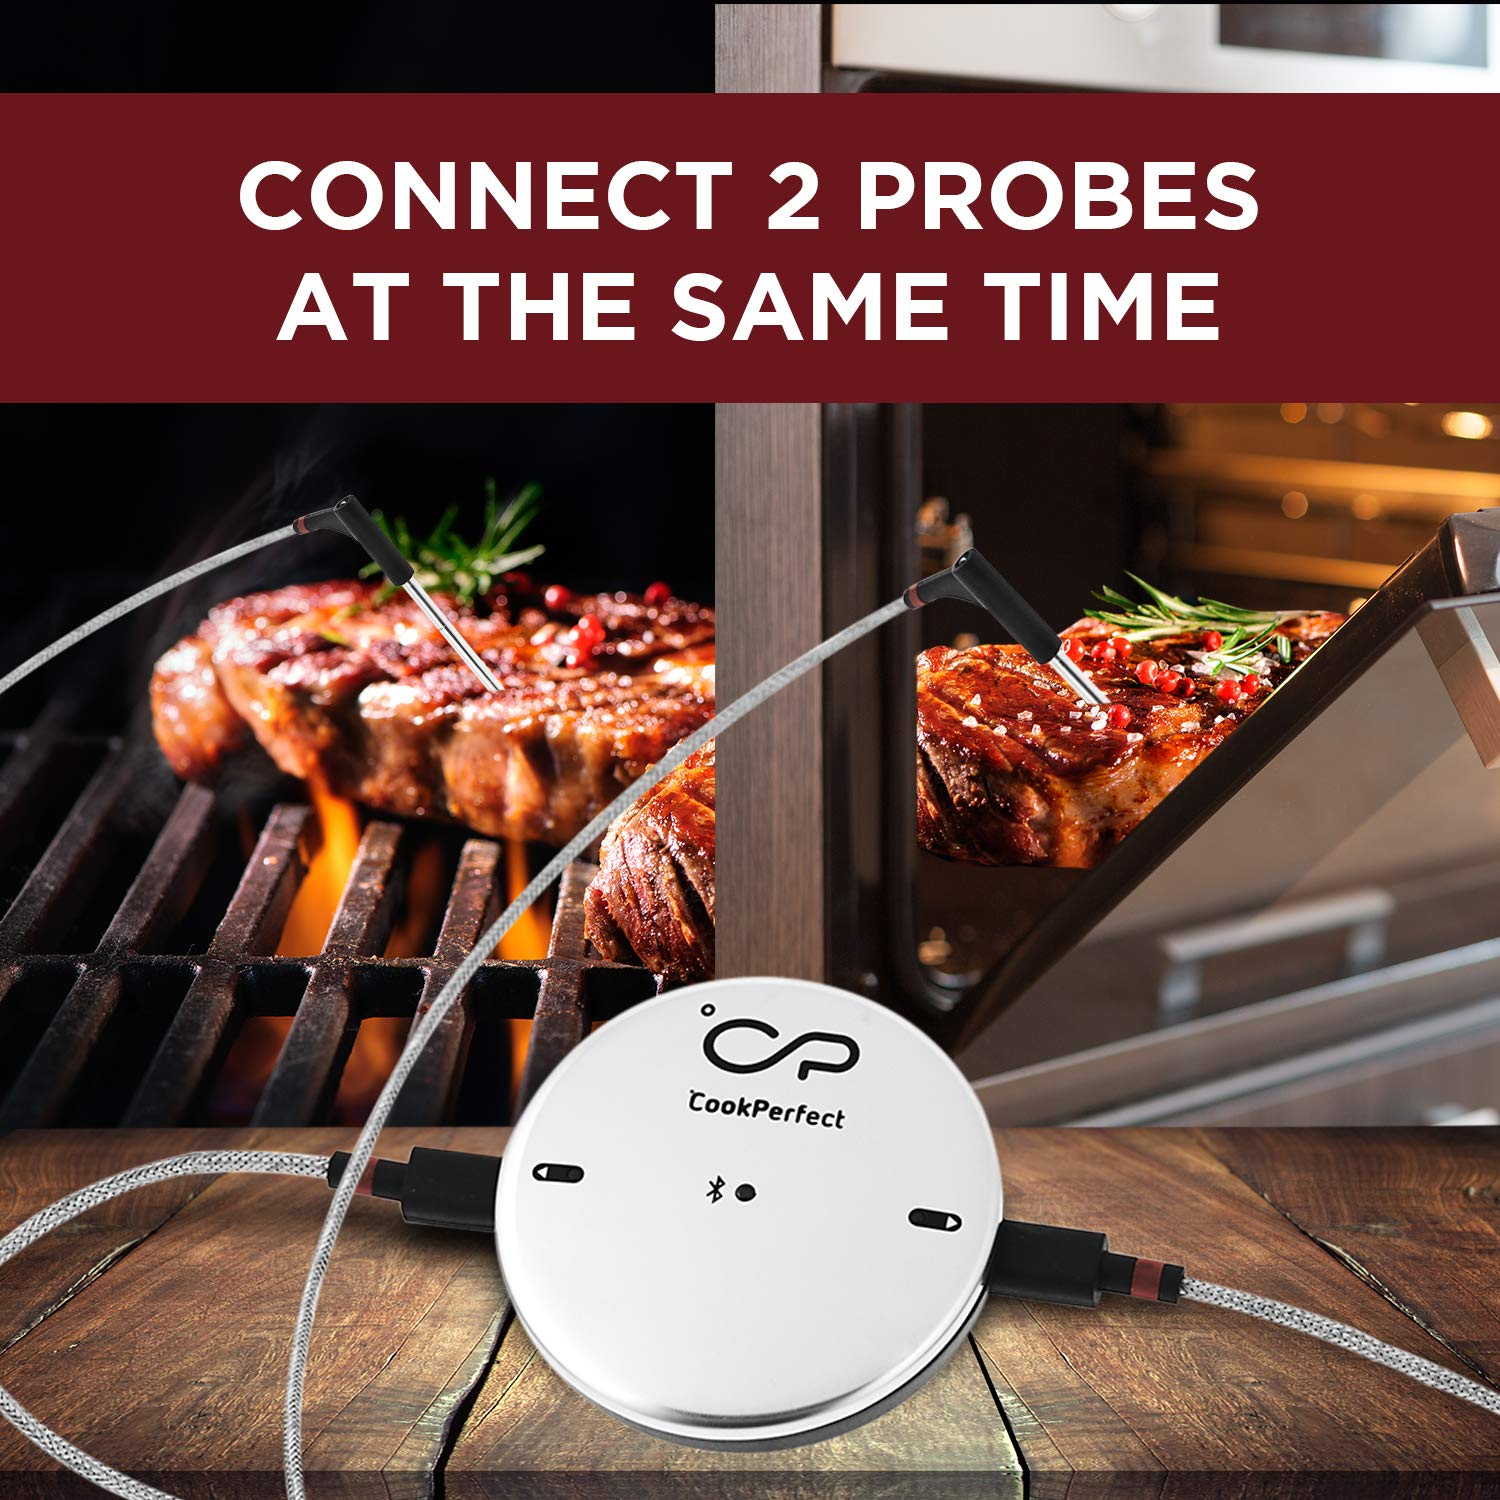 CookPerfect Wireless Meat Thermometer with 400ft Bluetooth Range | Automatic Core and Air Temperature Readings | for BBQ, Oven and Grill Cooking (1 Probe Included) by CookPerfect (Image #5)